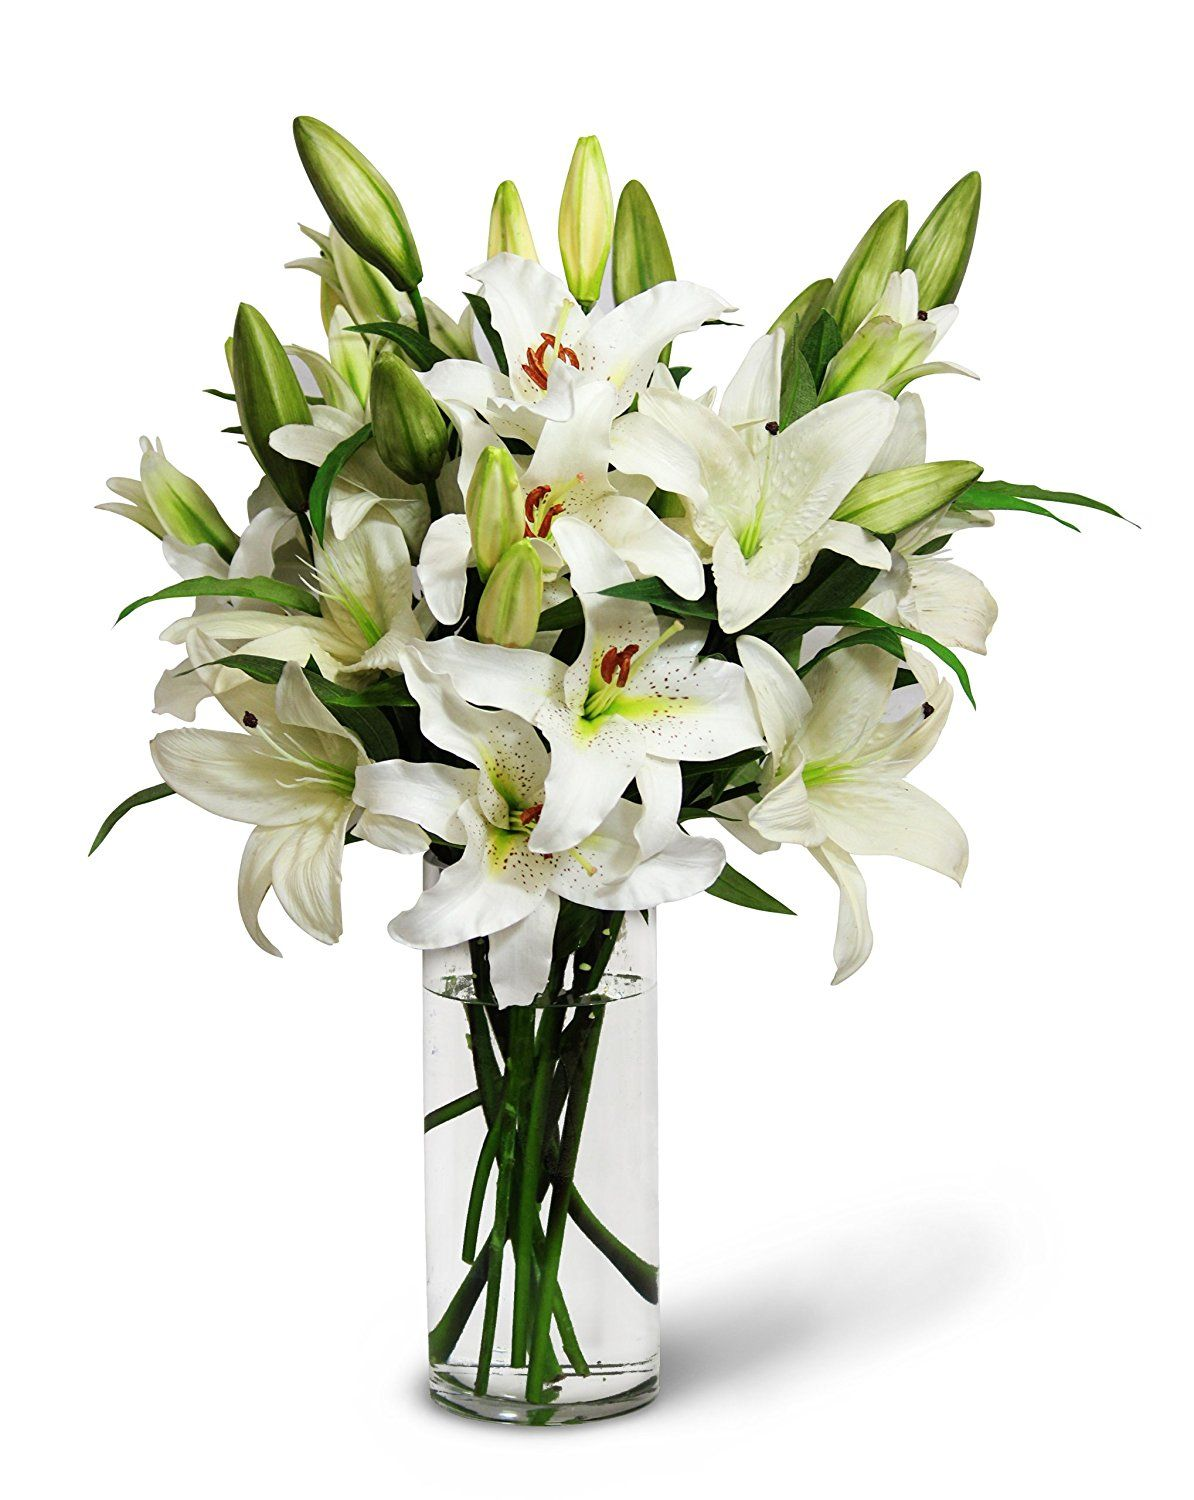 White Lily Bouquet (13 Stems) The KaBloom Collection